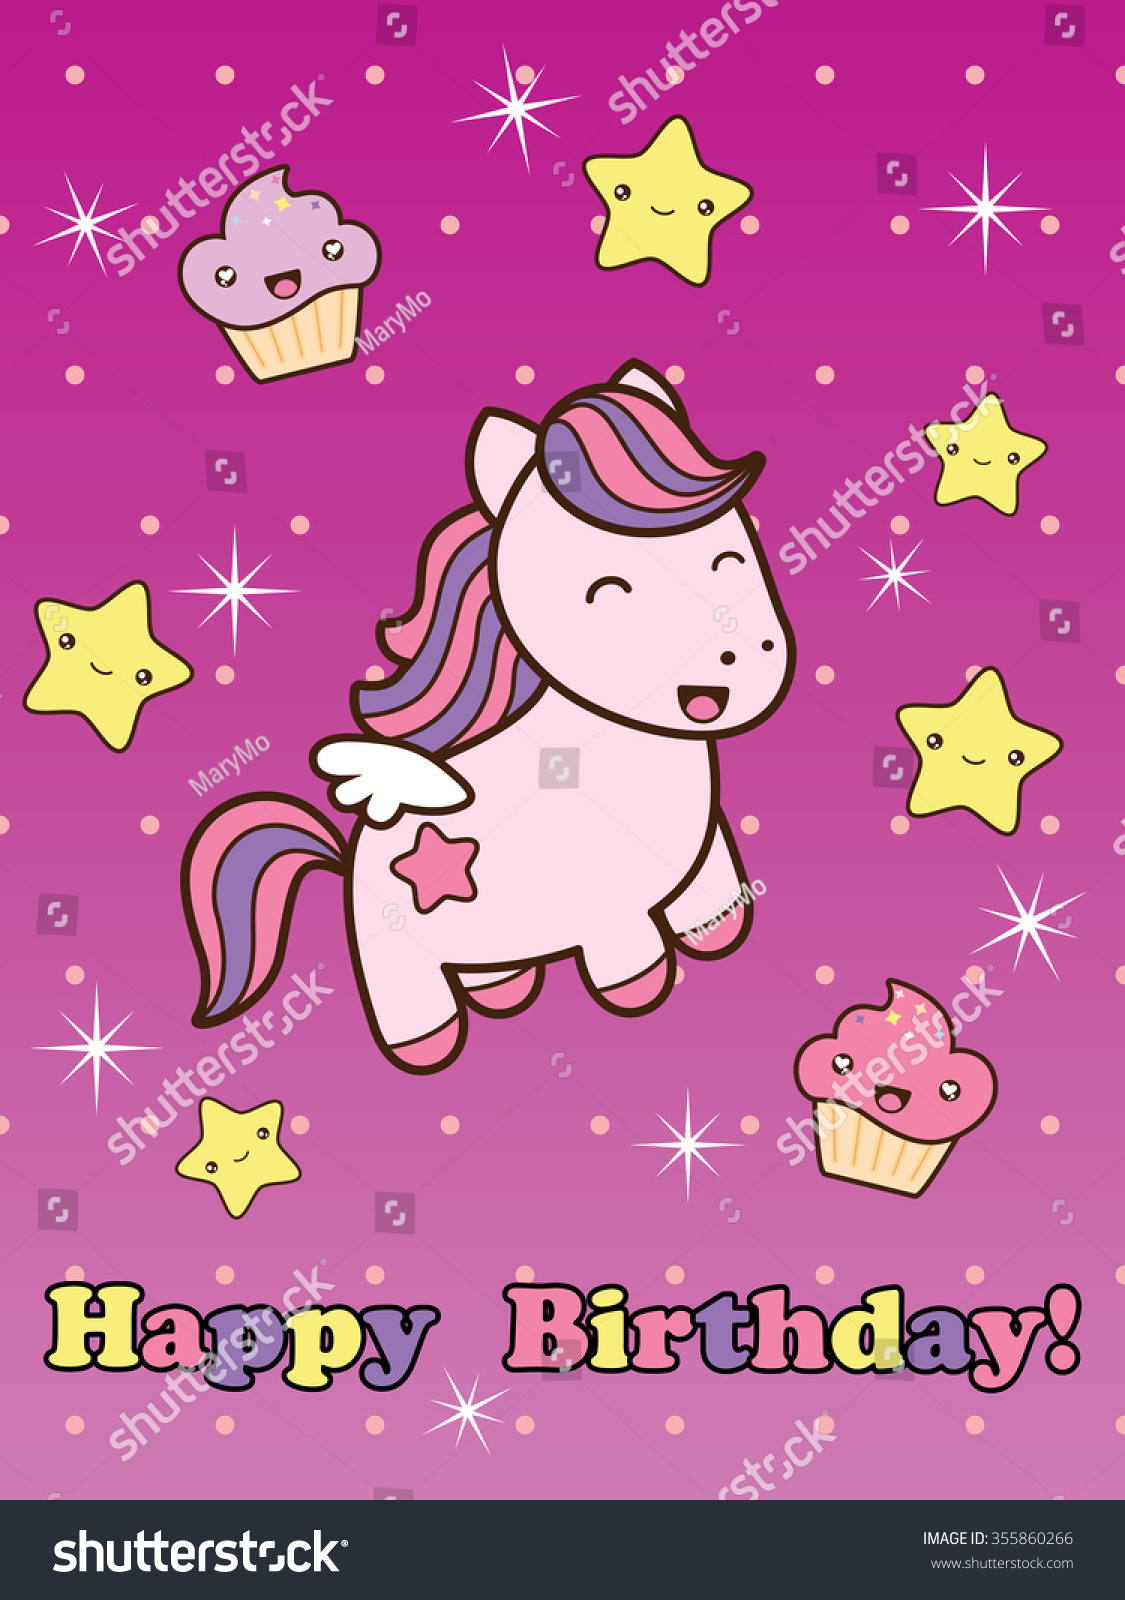 Happy Birthday Card With Cute Smiling Cartoon Horse Raster Illustration Childish Background